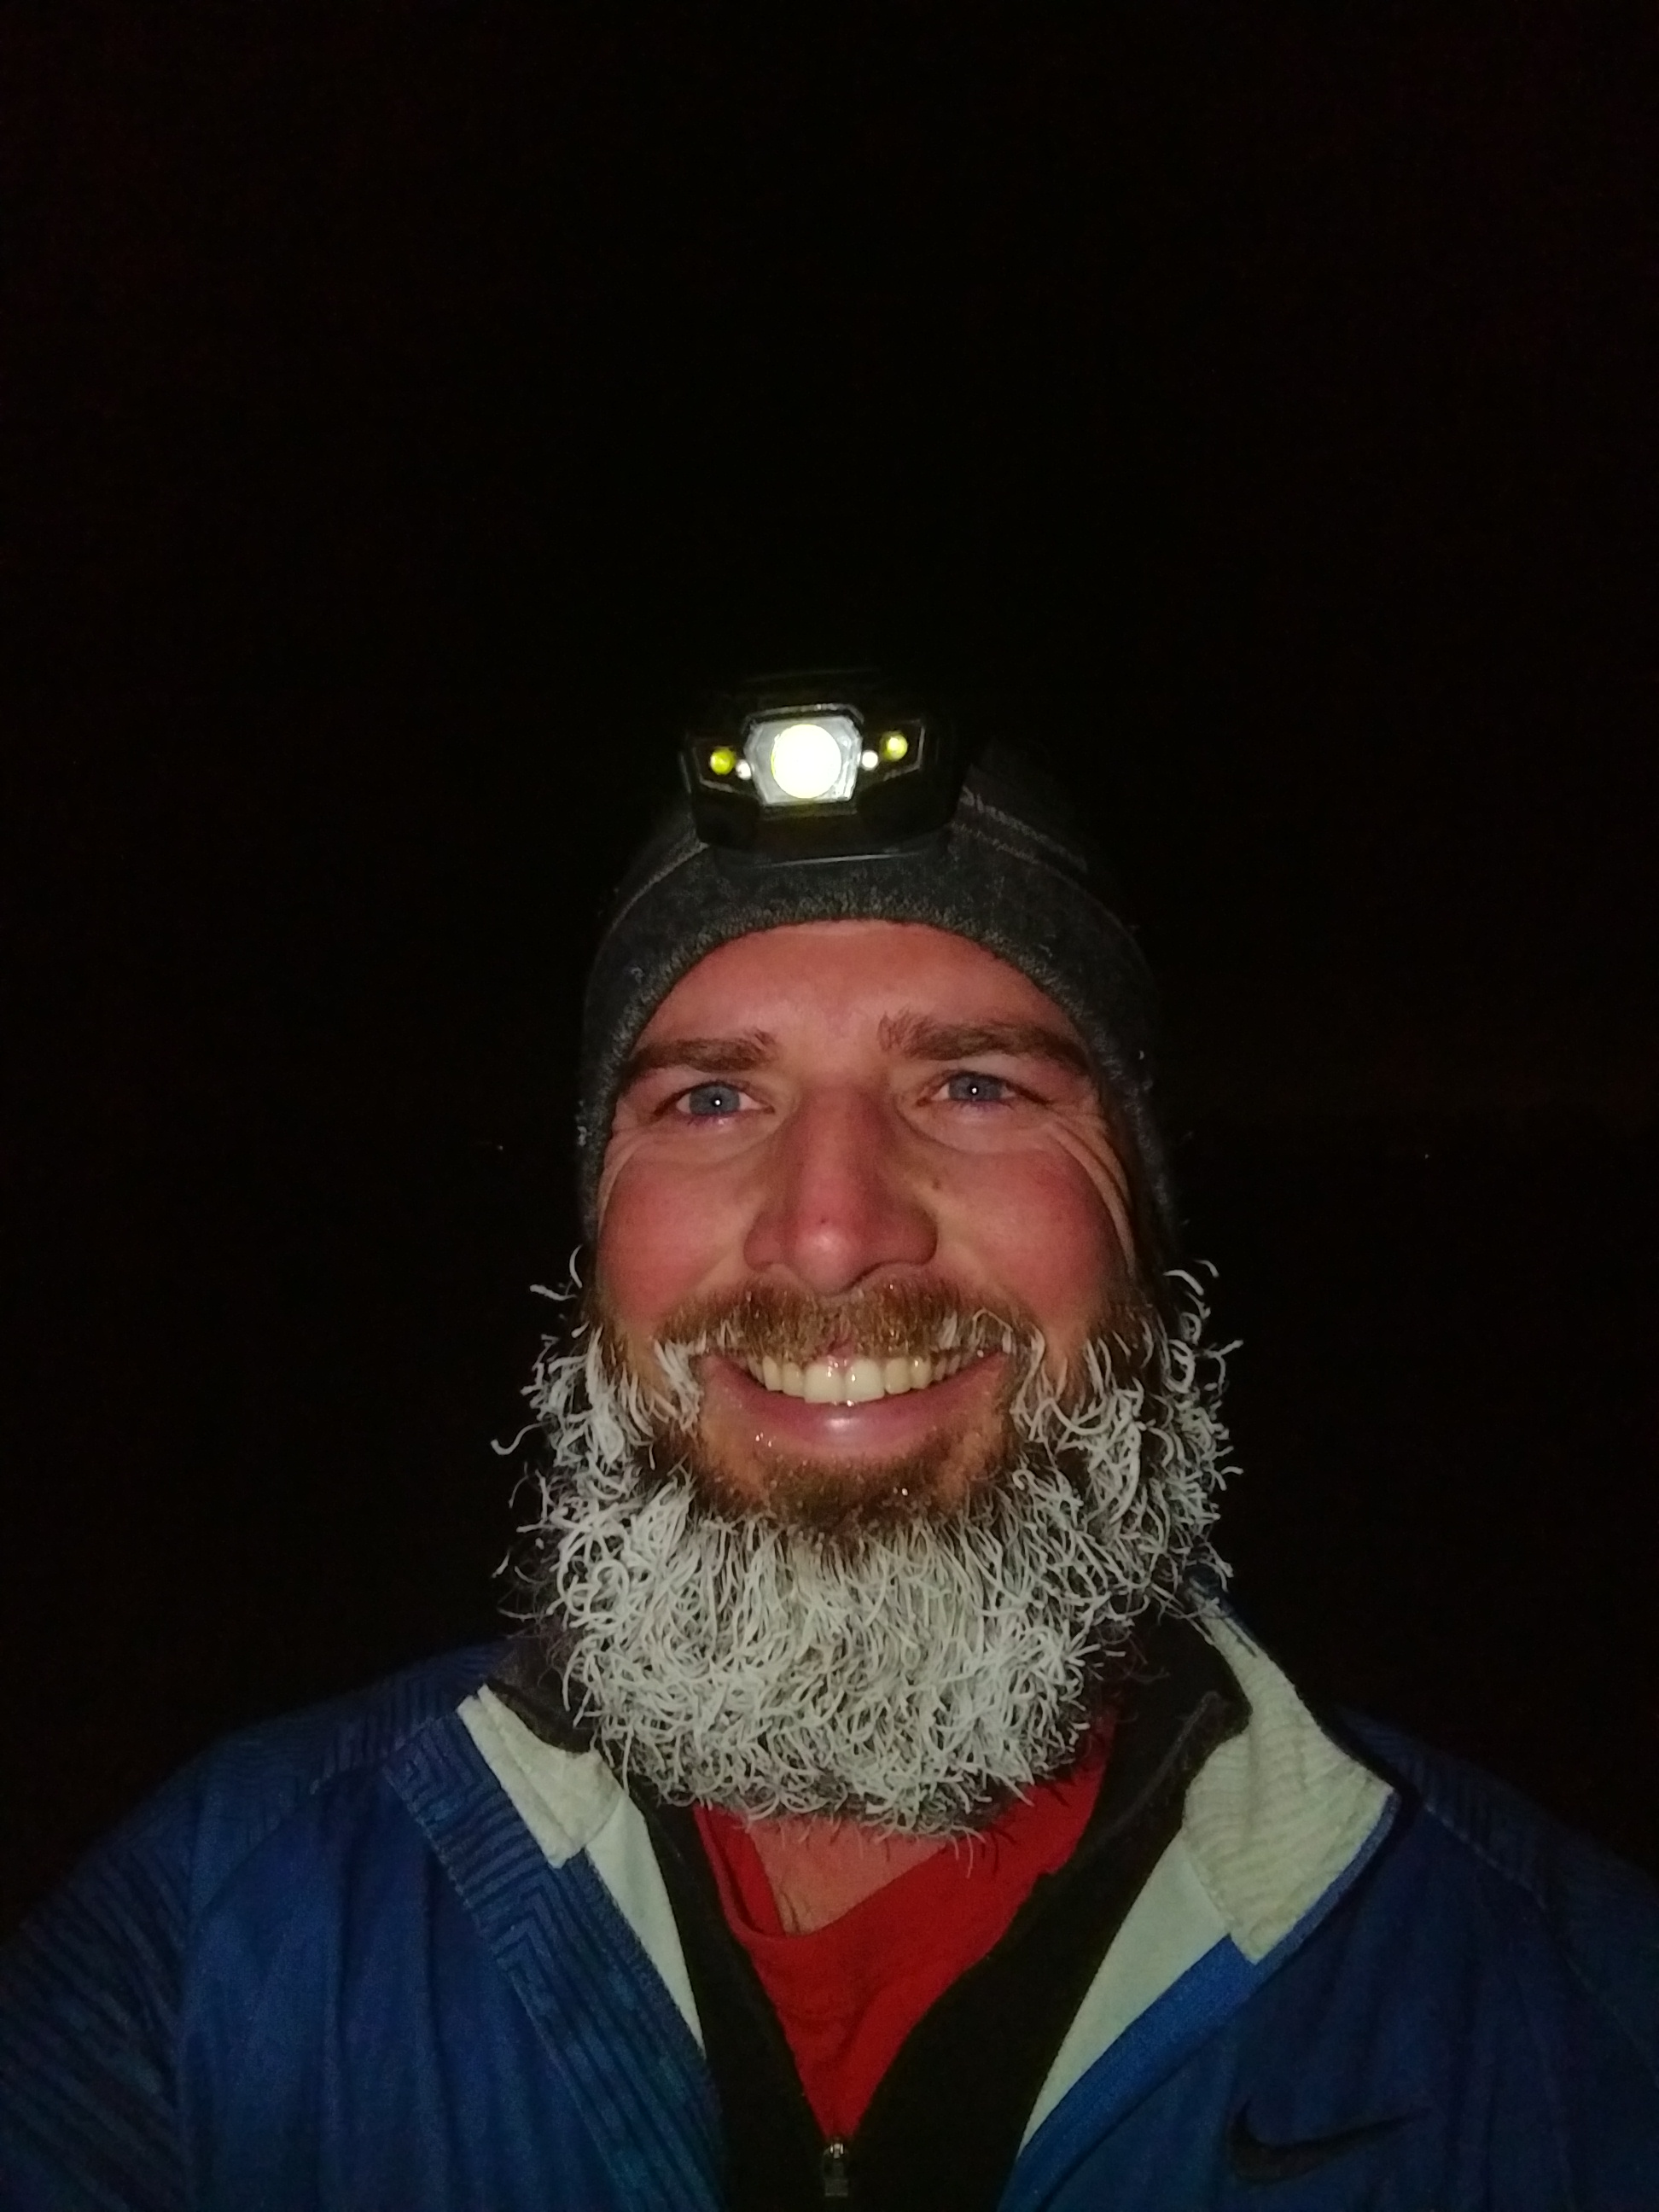 Man with snow frozen in his beard.